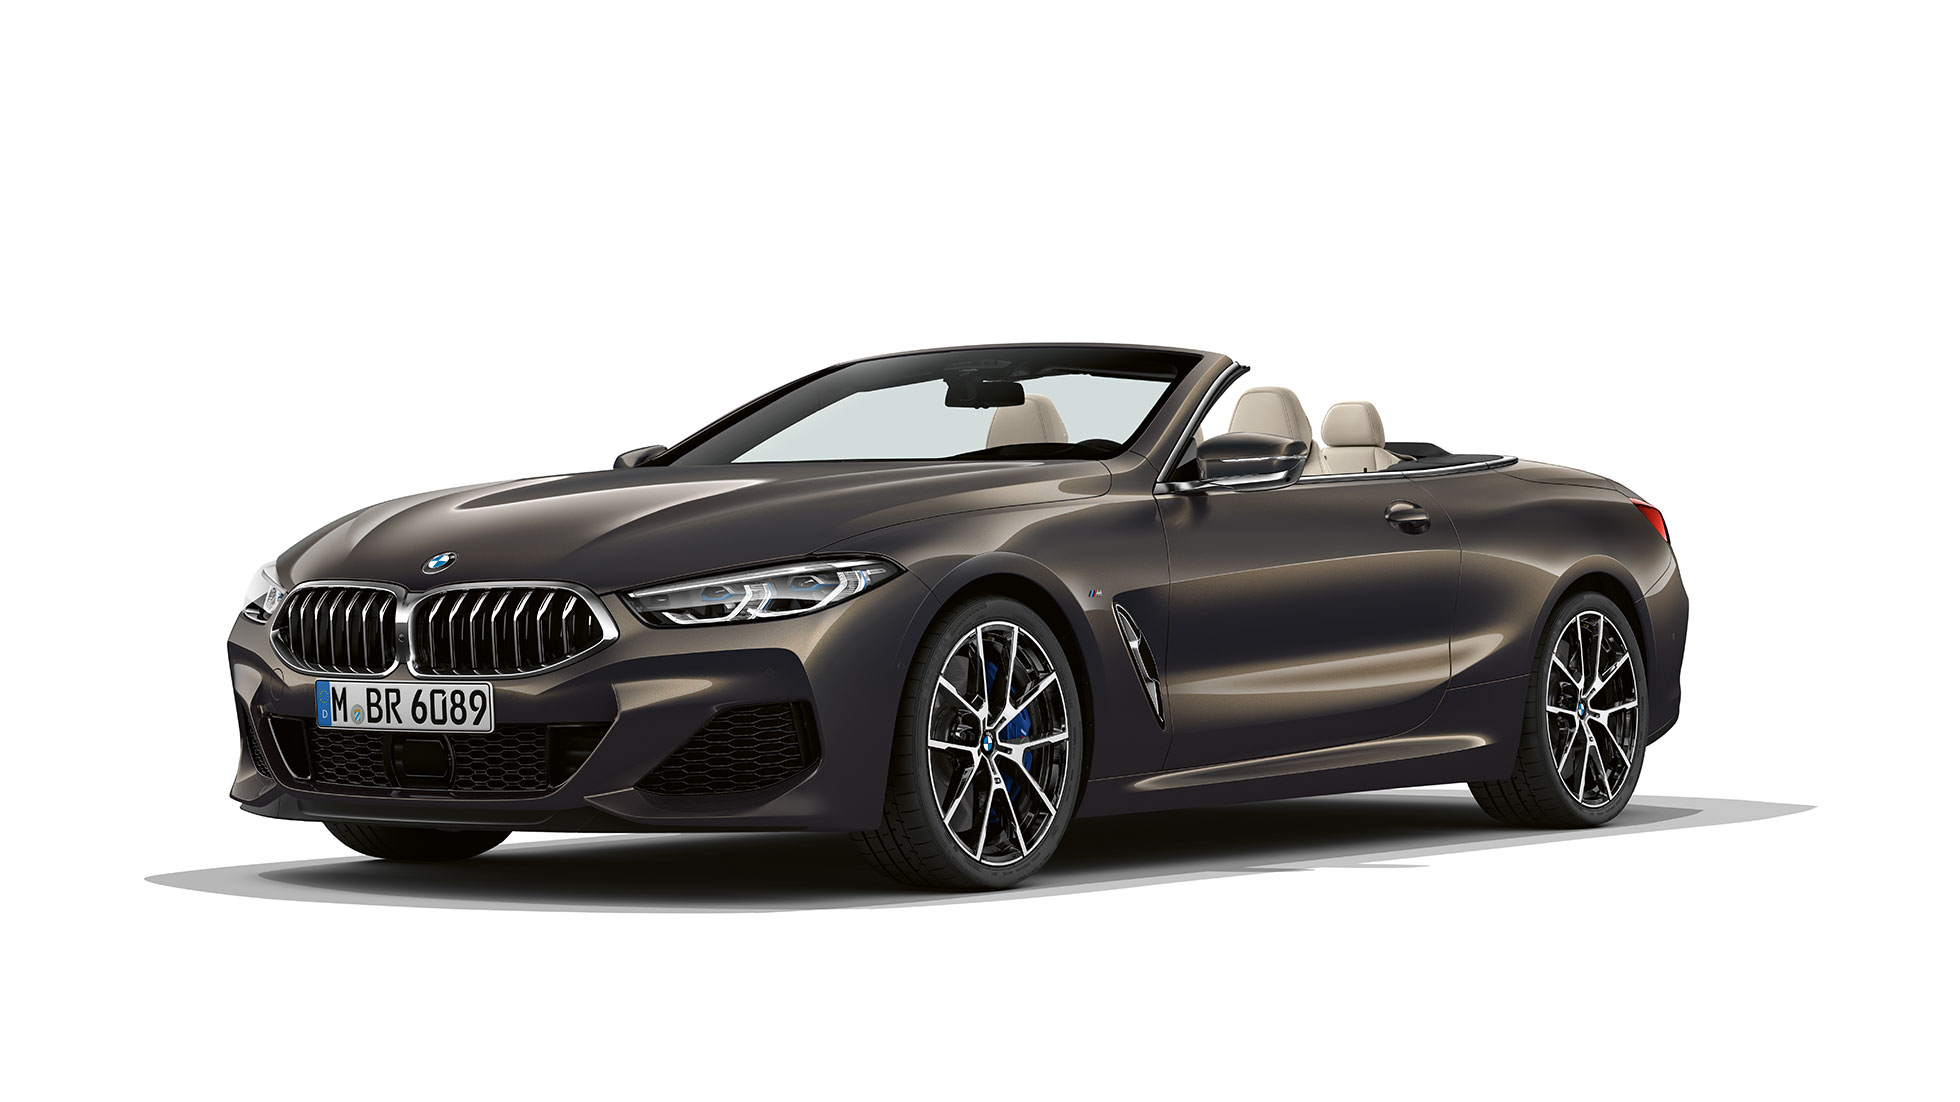 BMW M850i xDrive, Dravit Grey metallic, three-quarter view front.